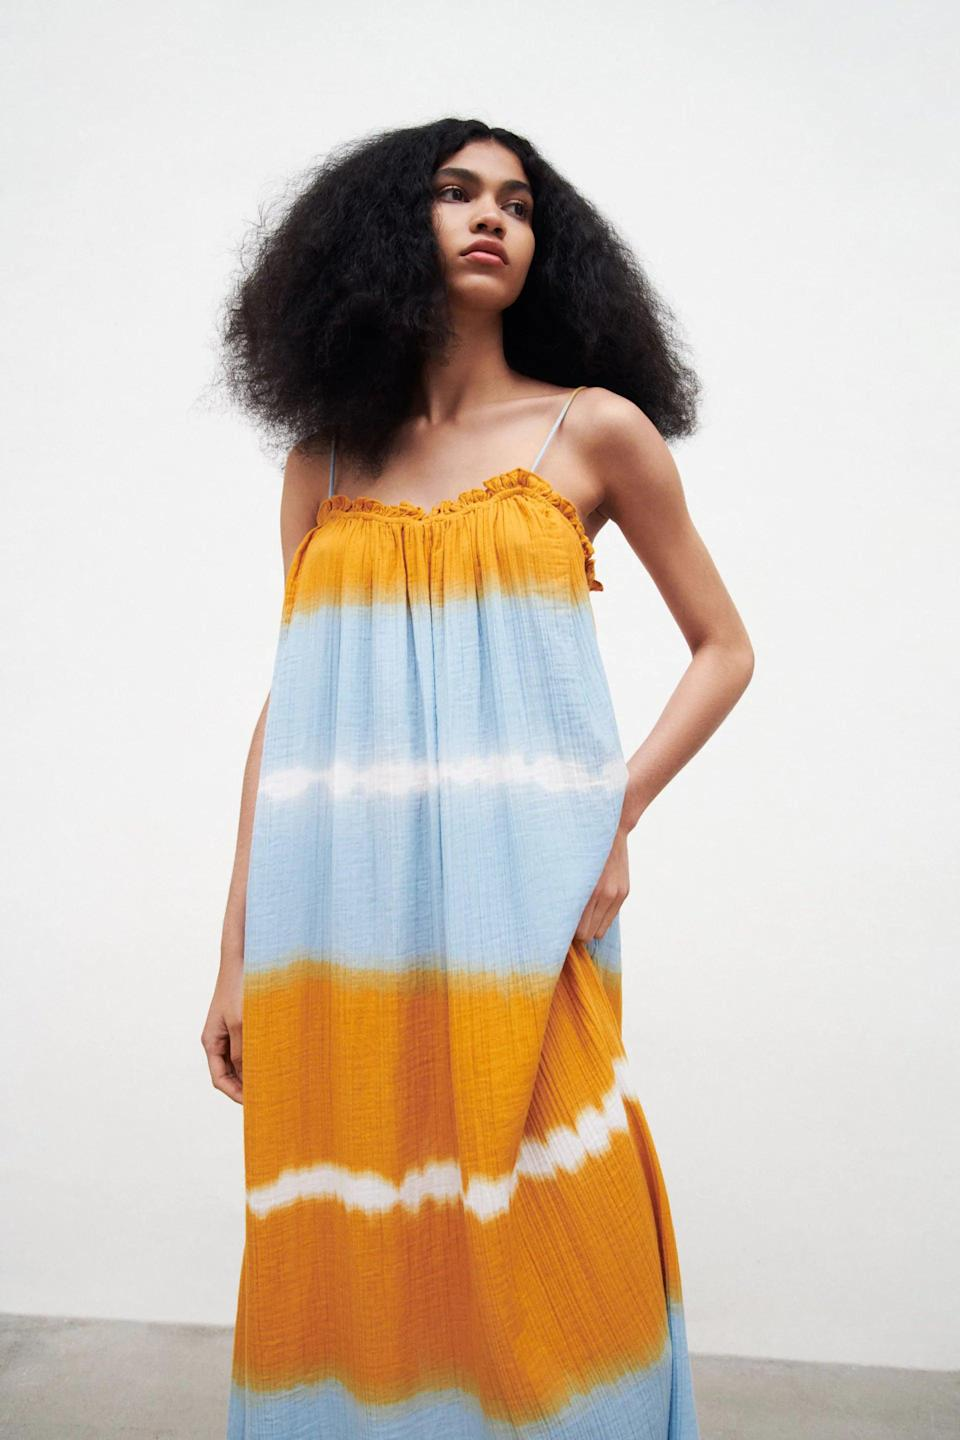 <p>Whether you style this <span>Zara Tie-Dye Gauze Dress</span> ($50) with pared-back Keds sneakers or add a touch of style with embellished slide sandals, it will help you feel effortless and polished.</p>